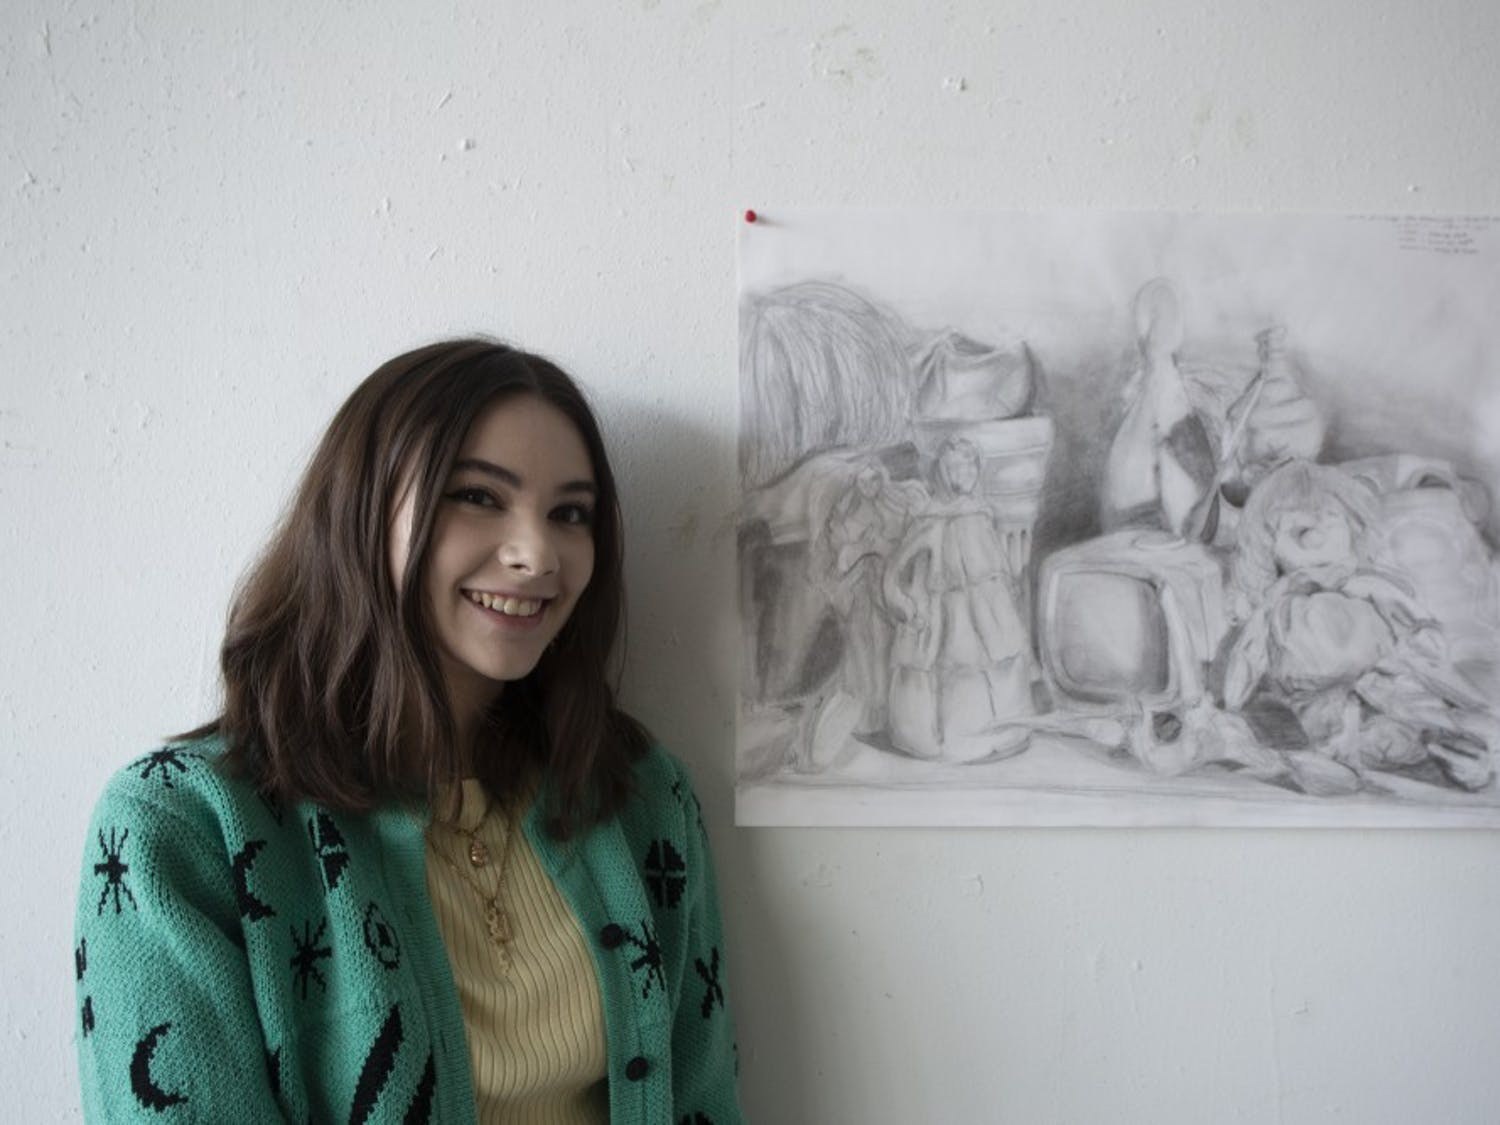 """Sidney Hines, a UNC sophomore shows her drawings she made over the past year.""""I was in the moment, it wasn't a thought out thing like most of the larger projects,"""" she said on Friday Oct. 11, 2019."""